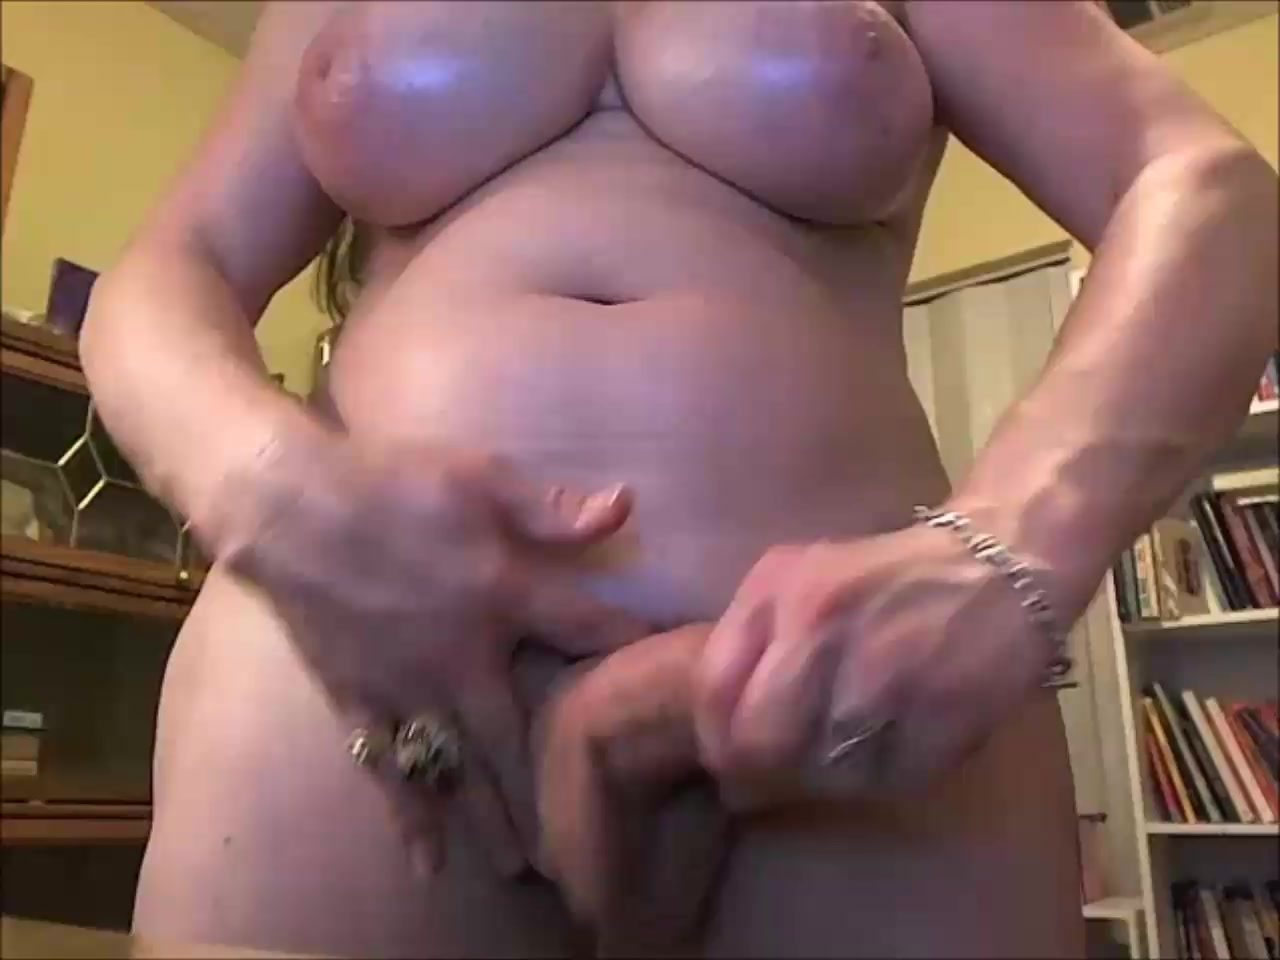 Blonde busty shemale with big ass - homemade free phone sex chat line